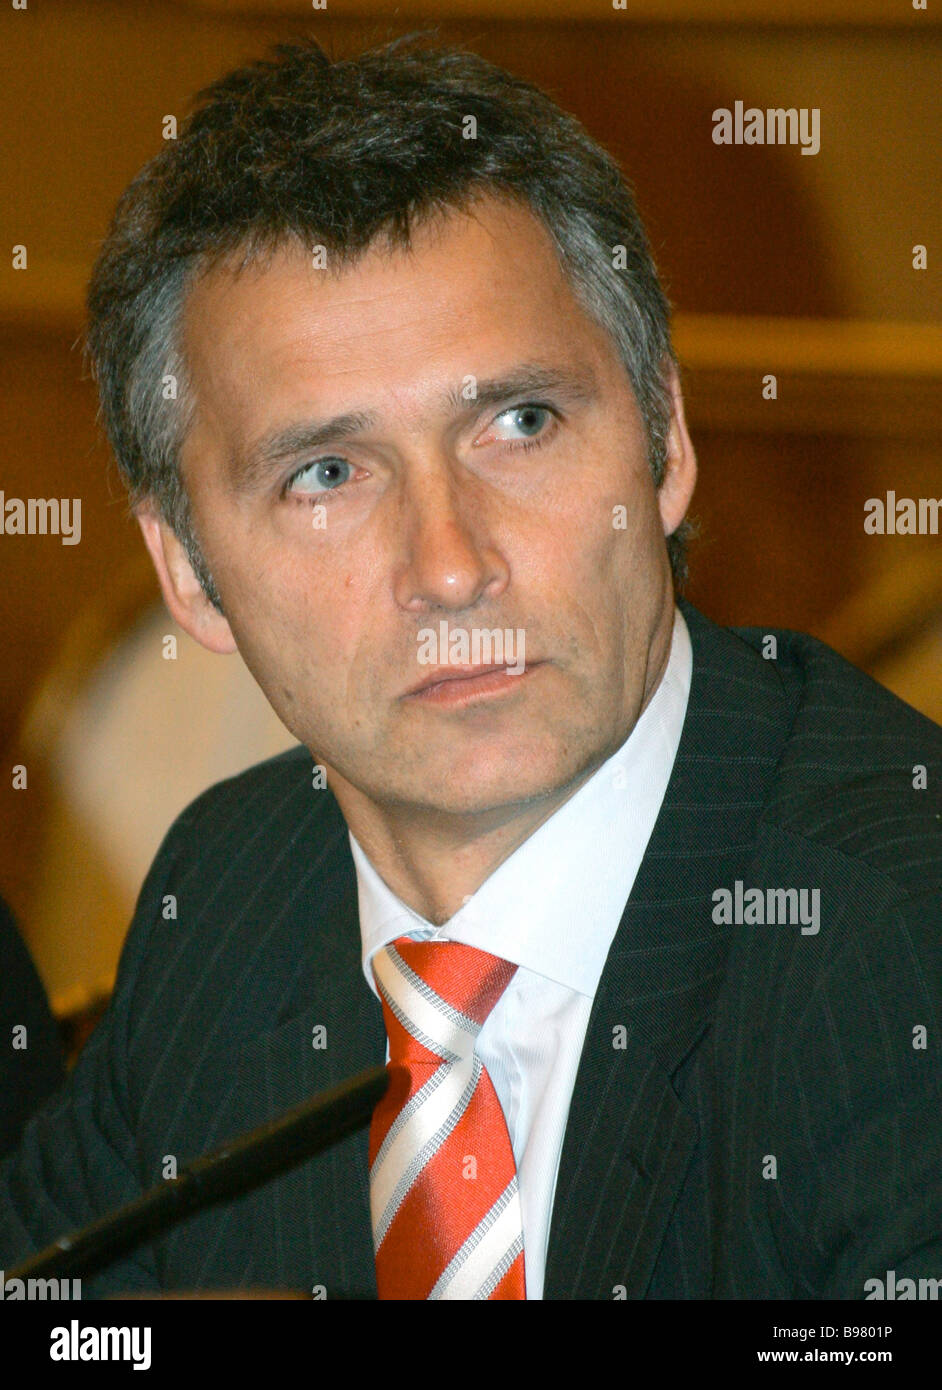 Norwegian Prime Minister Jens Stoltenberg visits Moscow - Stock Image